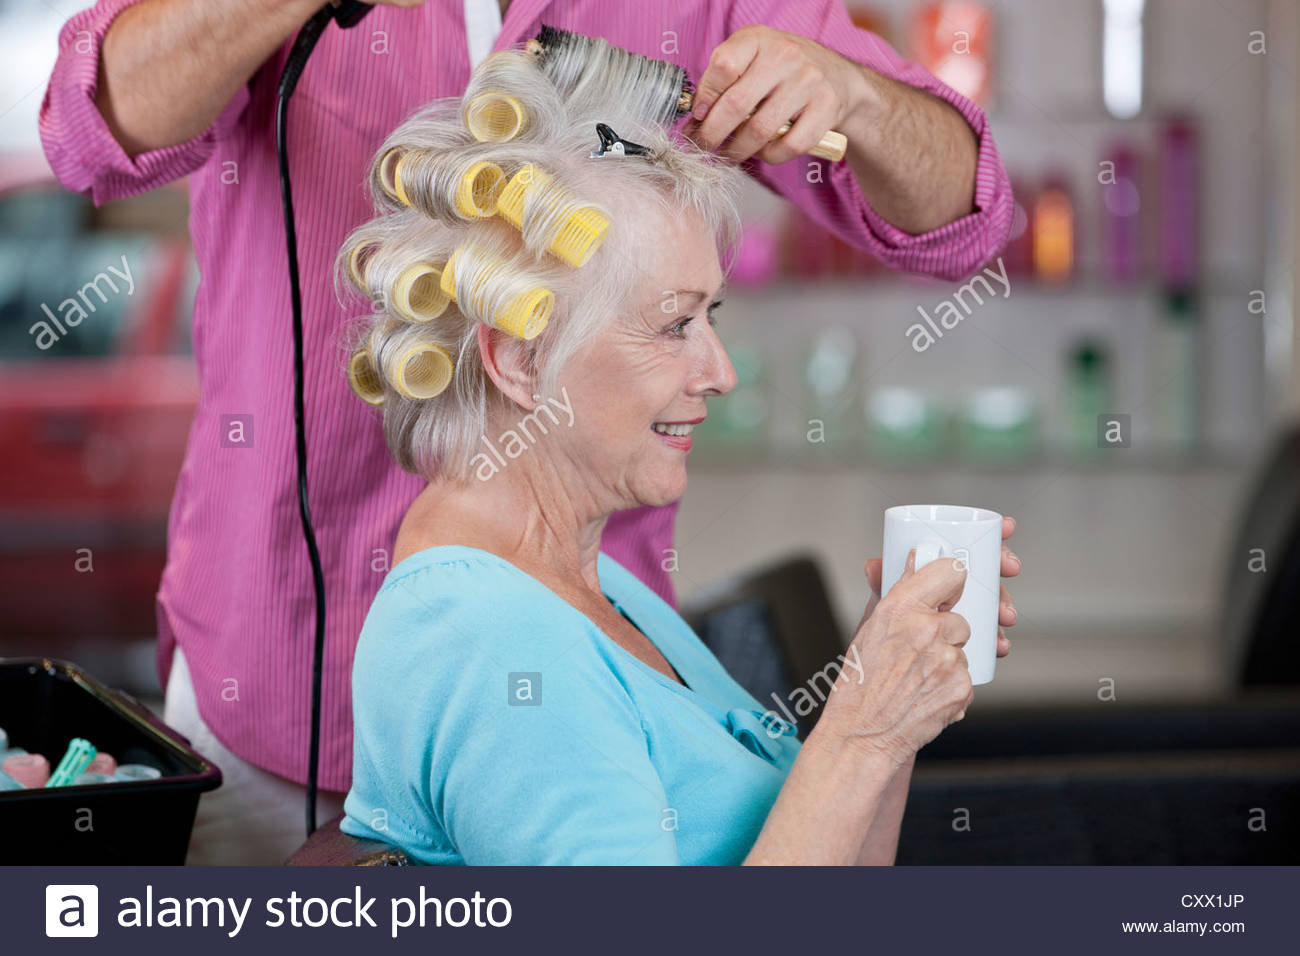 A senior woman drinking a hot beverage whilst having her hair dried, close up - Stock Image